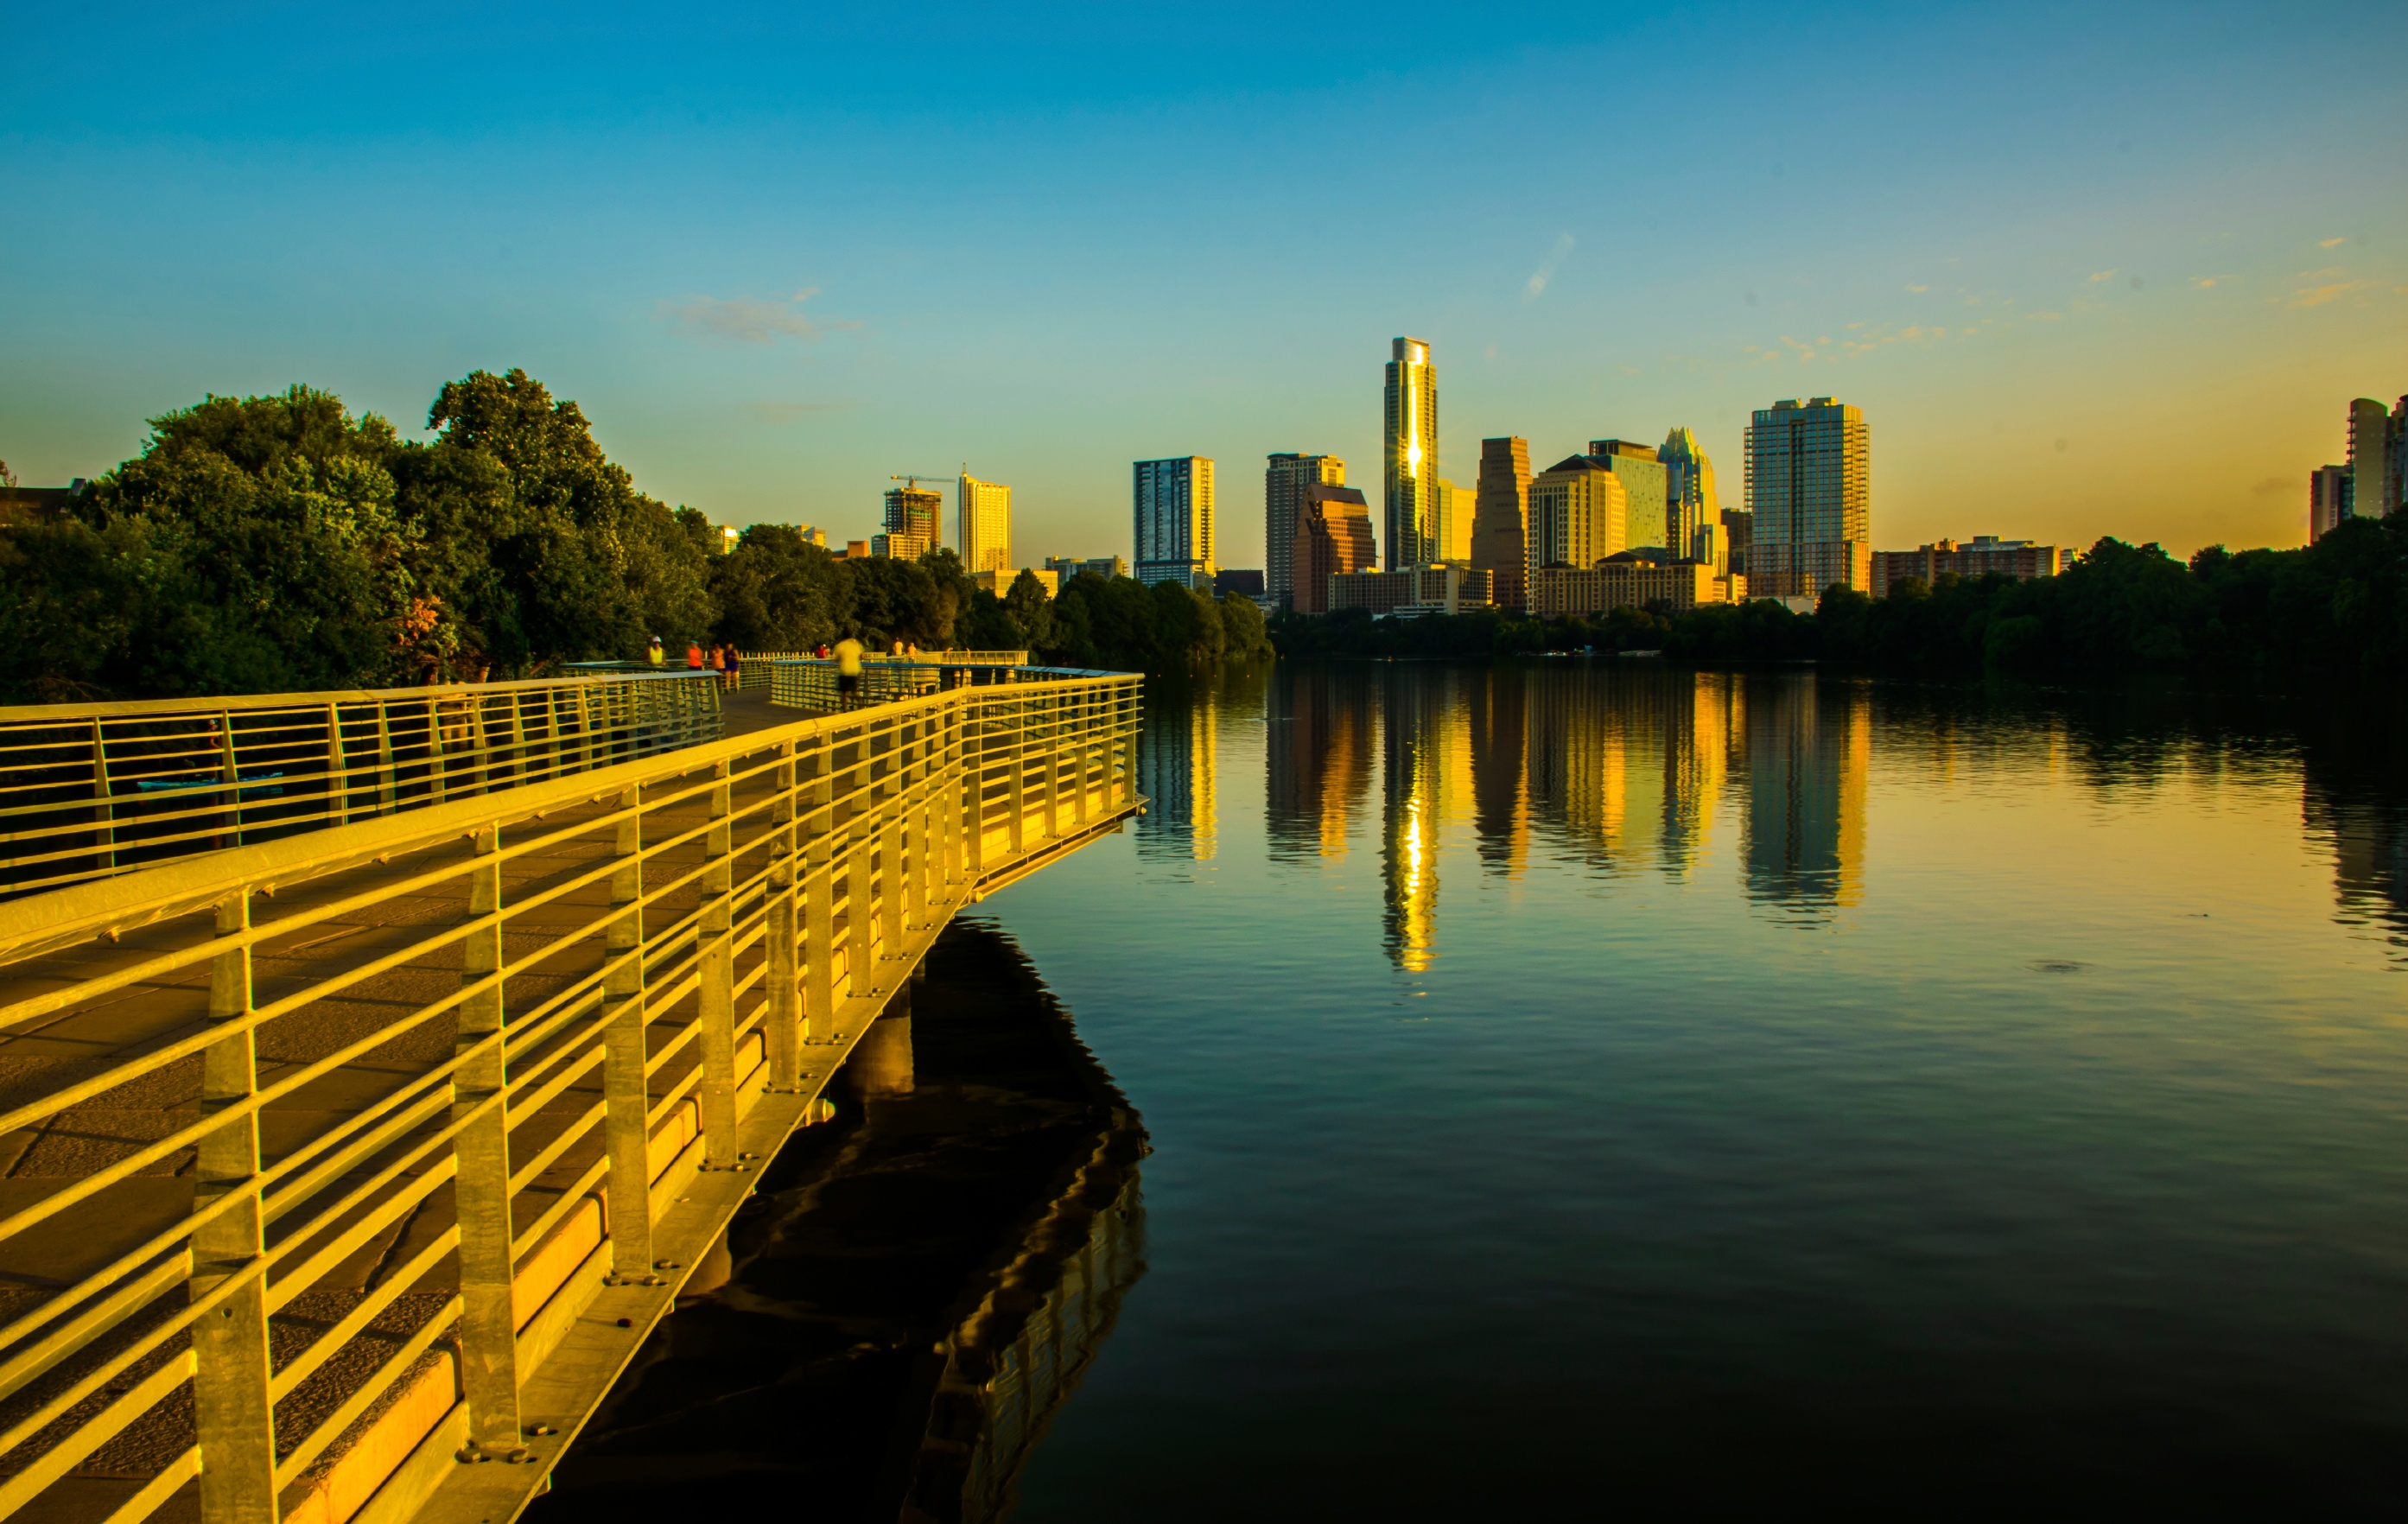 A view from the Lady Bird Lake of high rises in downtown Austin offering replacement property options for 1031 exchange investors.